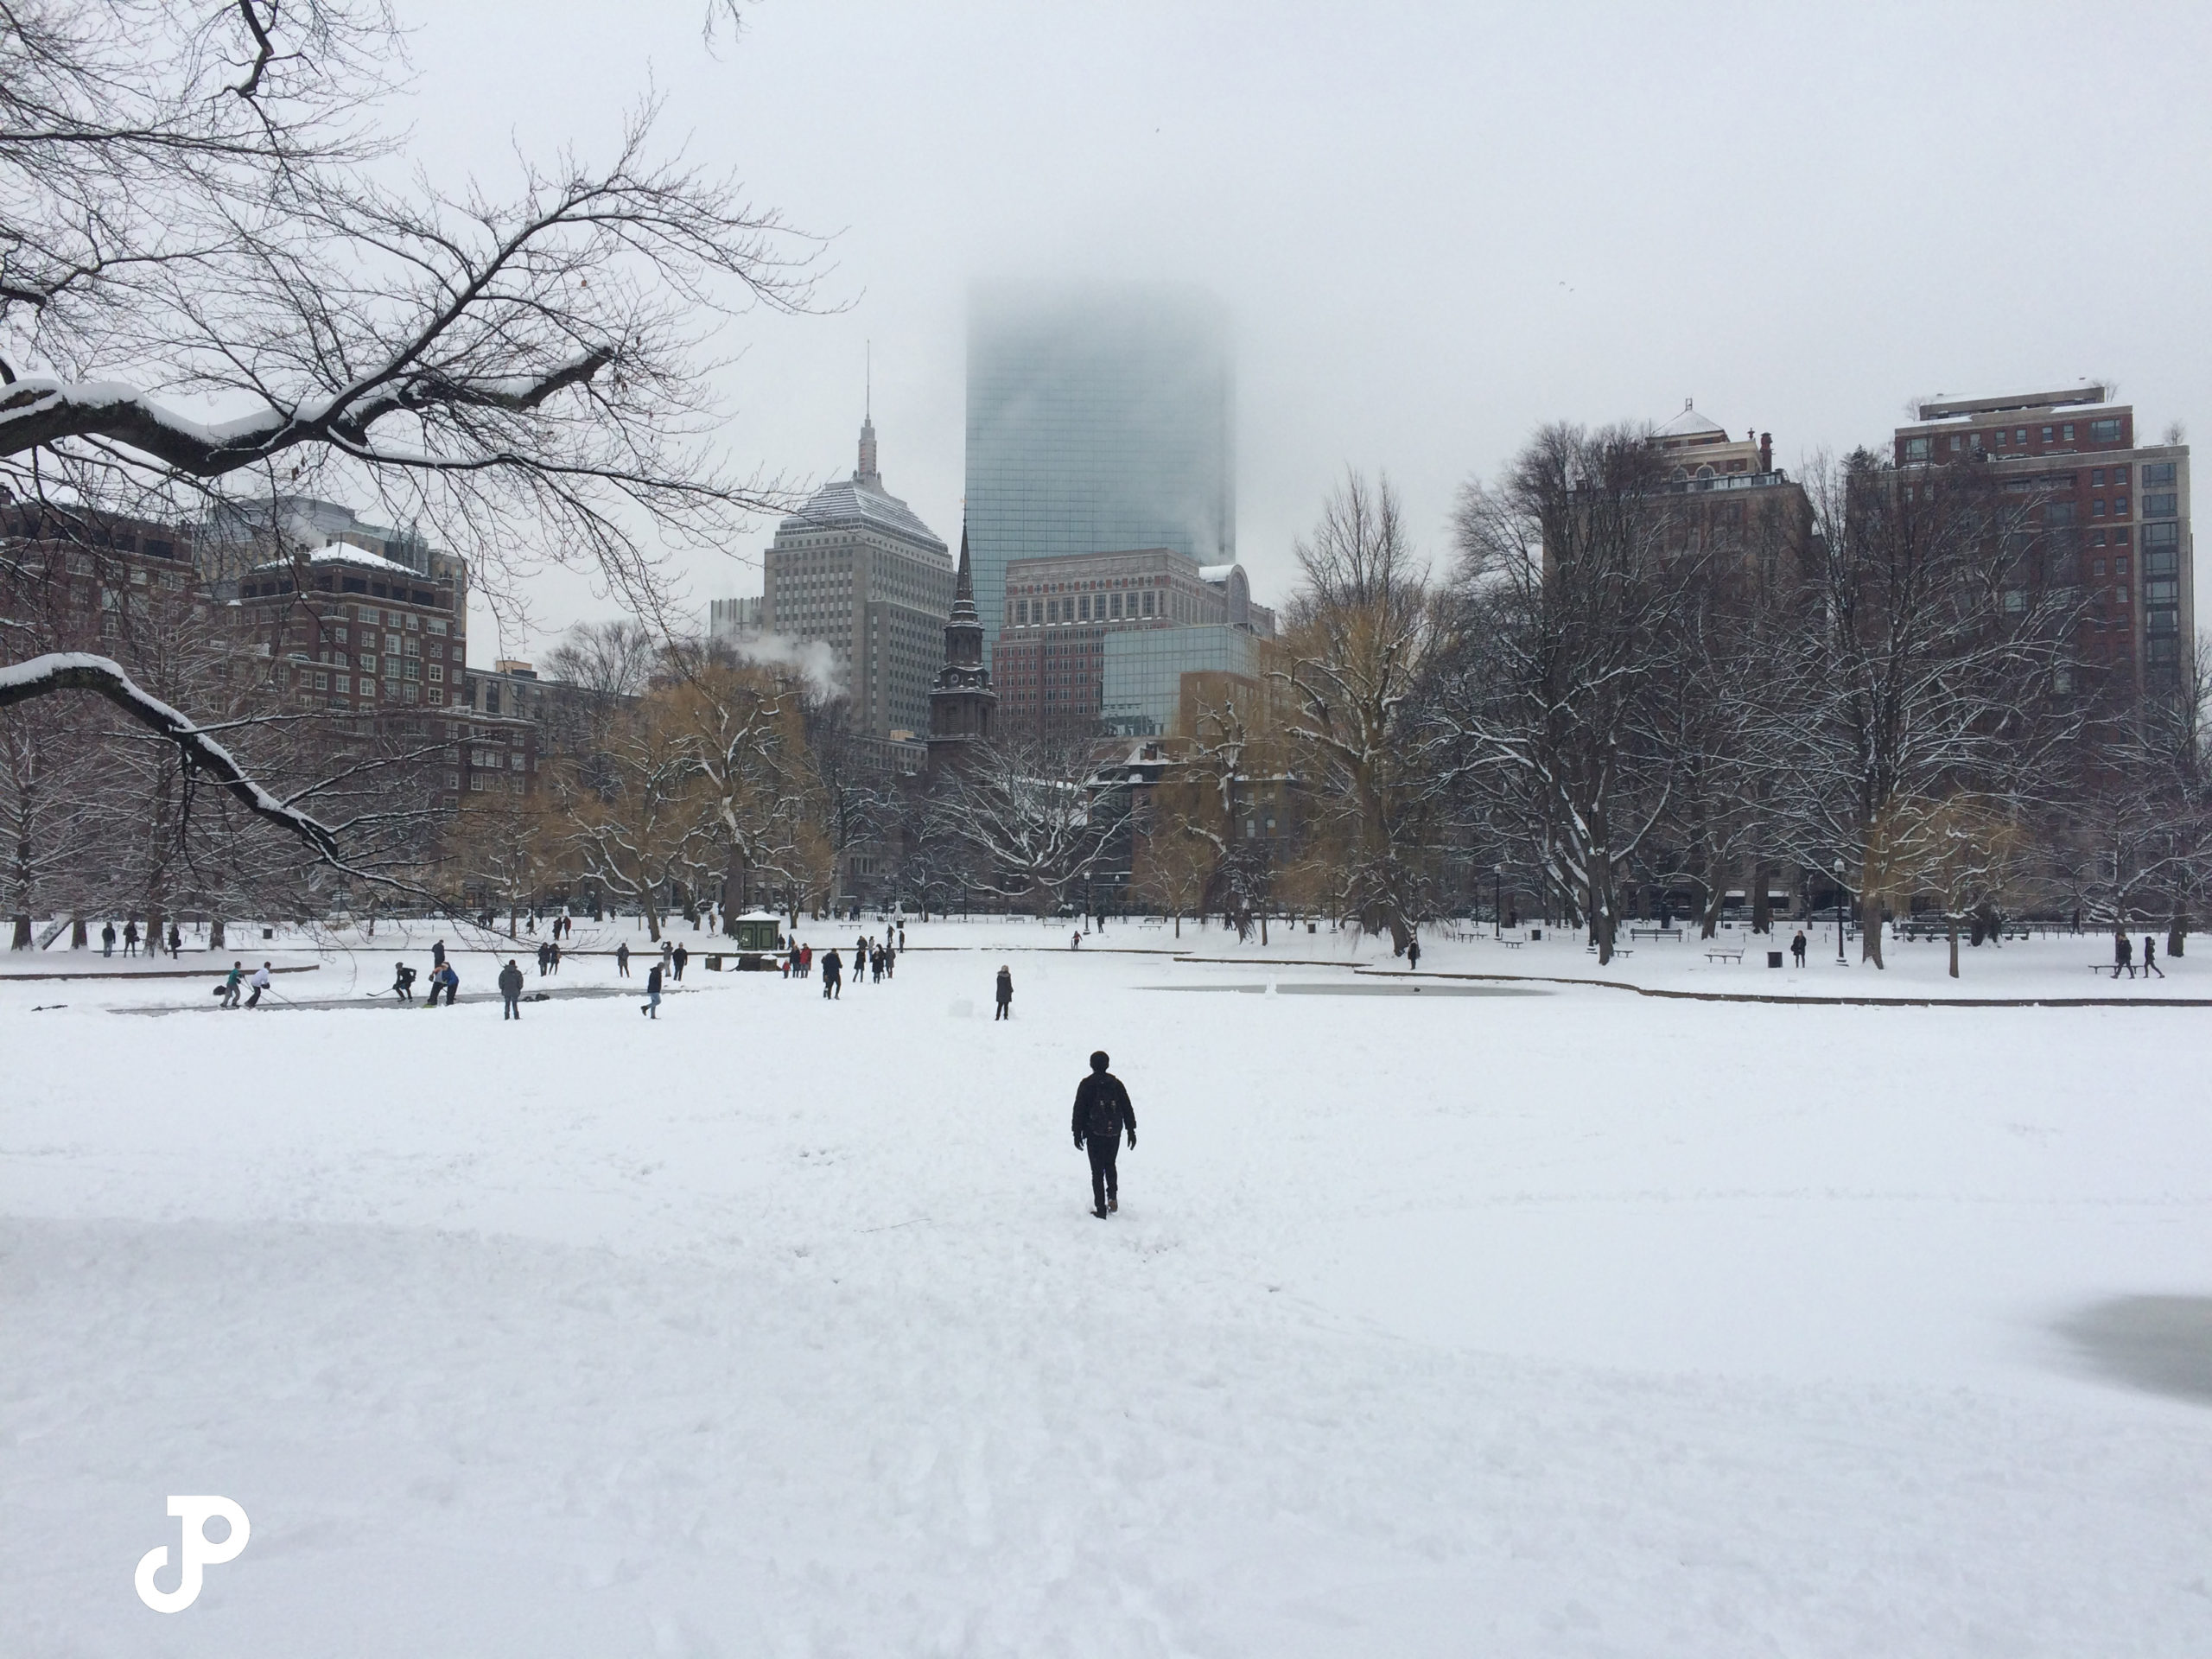 a snowy scene in the Boston Public Garden